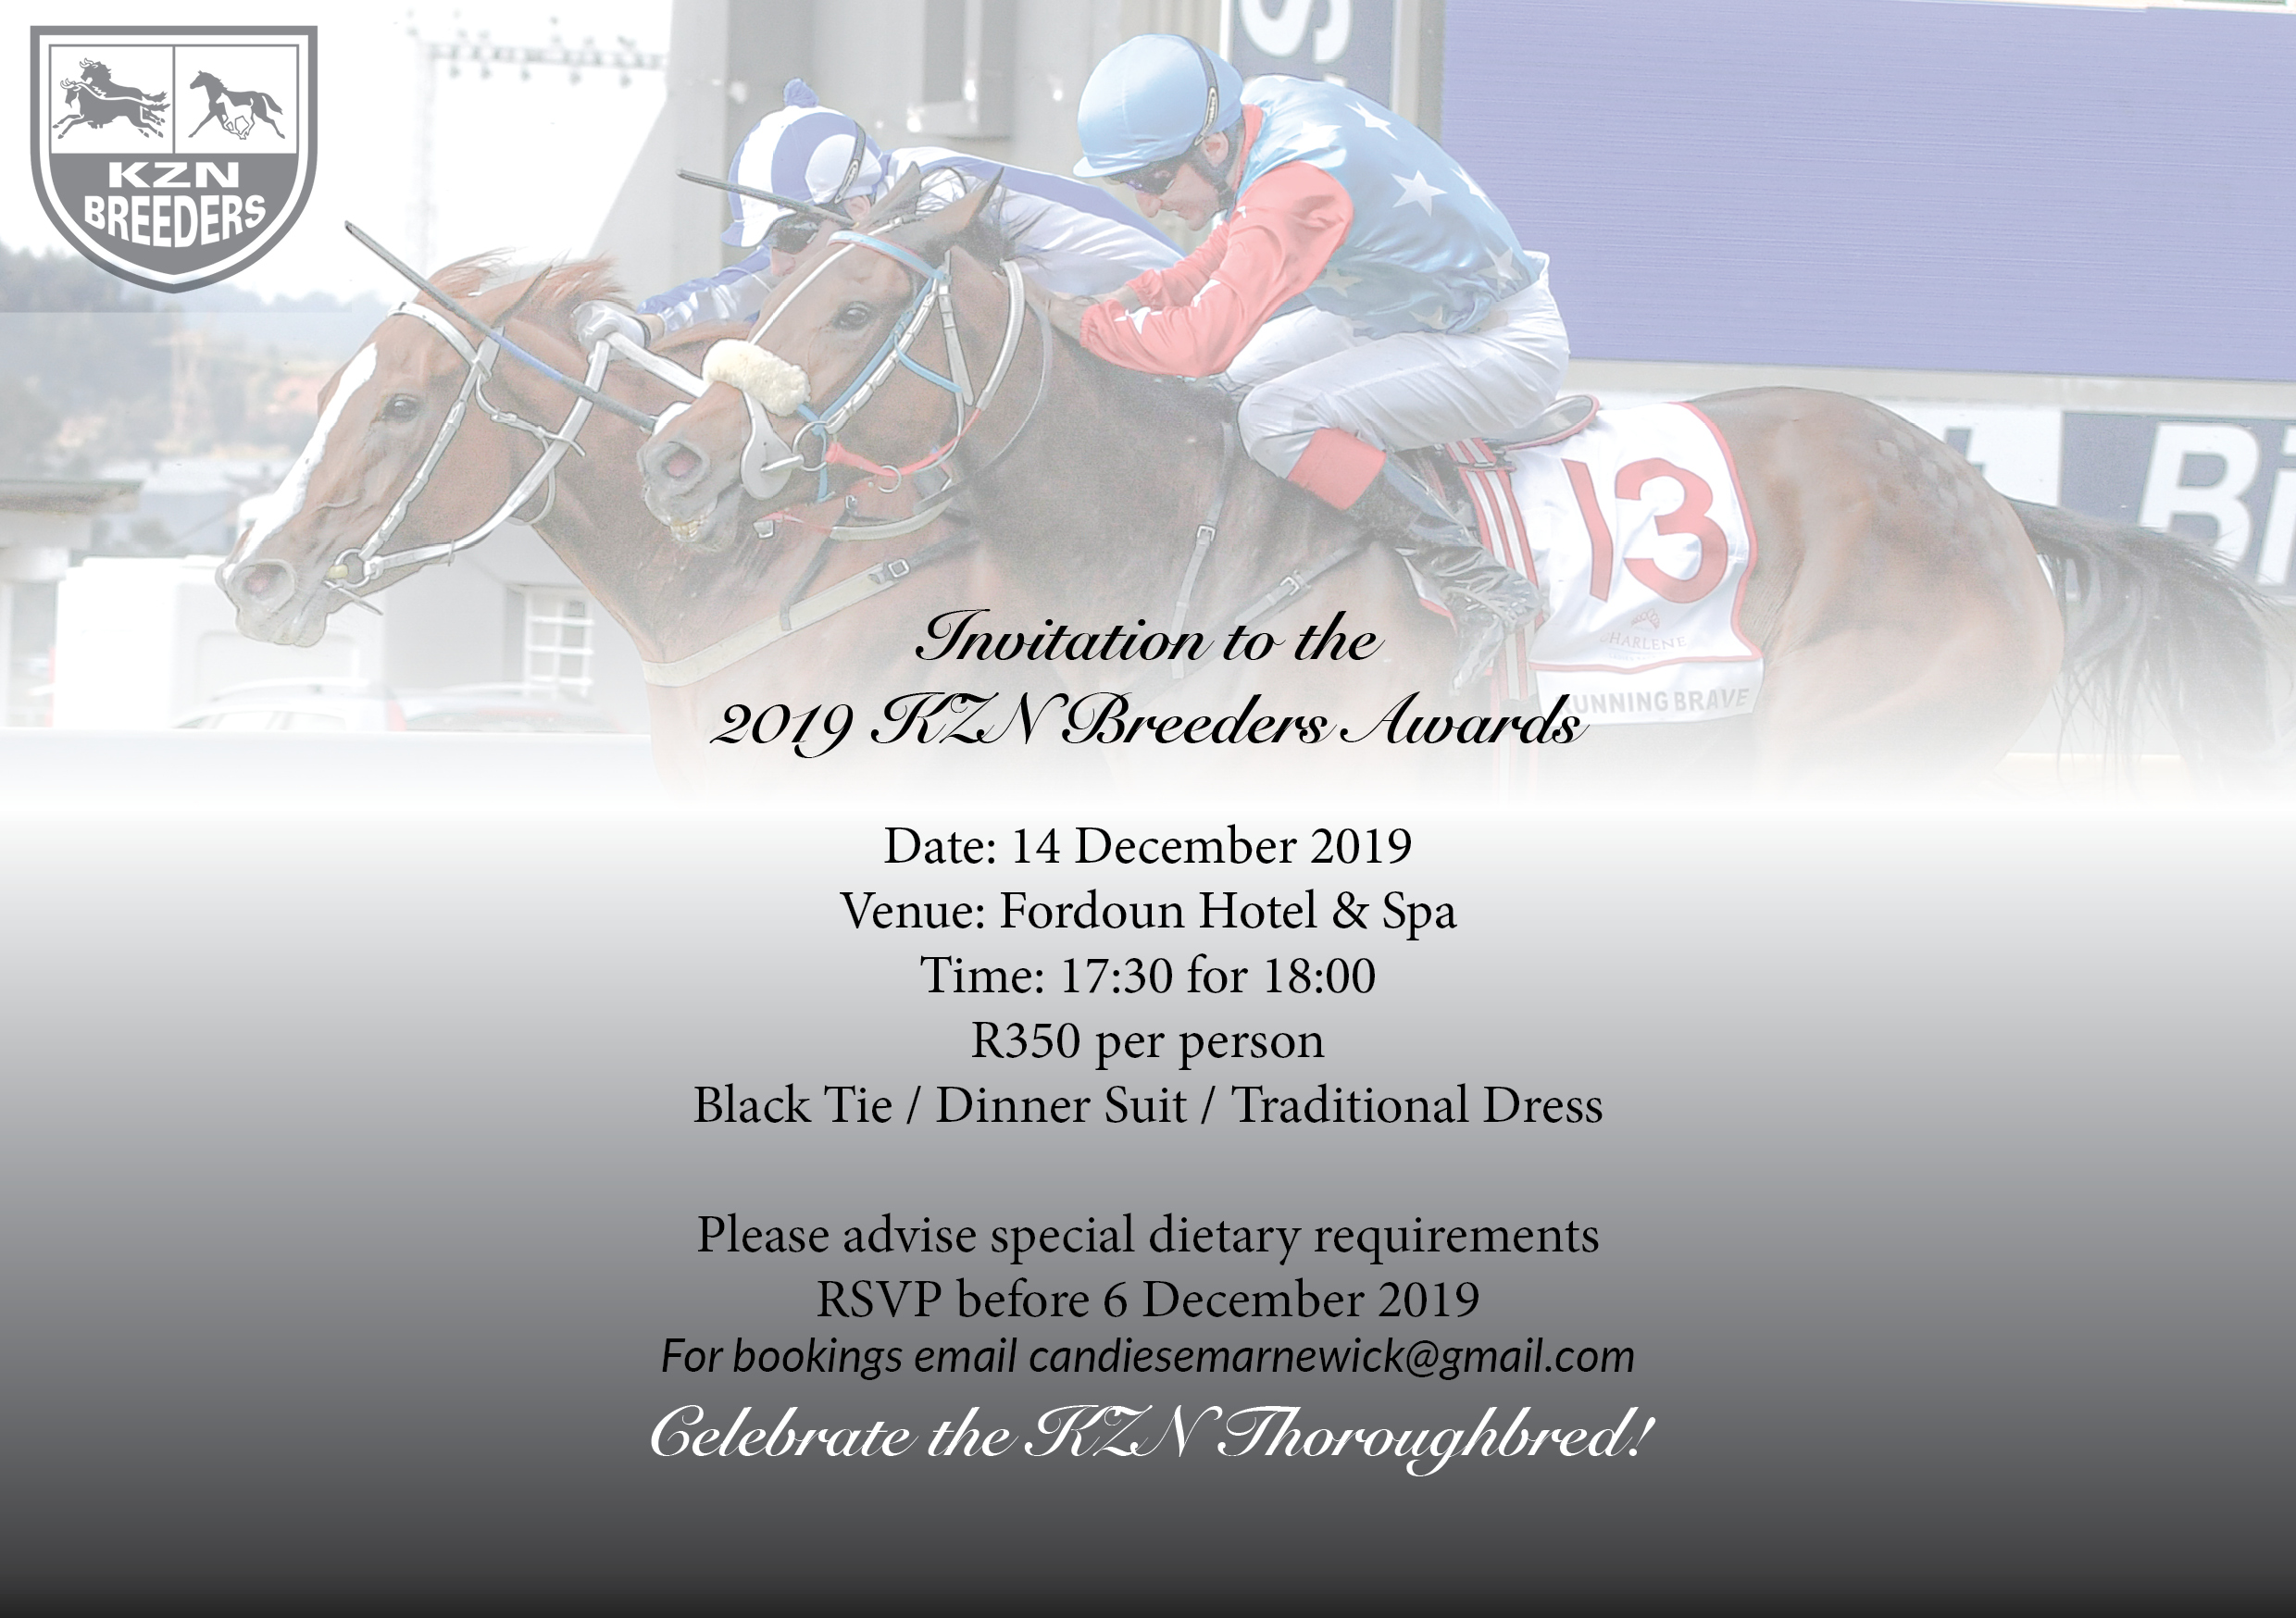 KZN Breeders Invite 2019